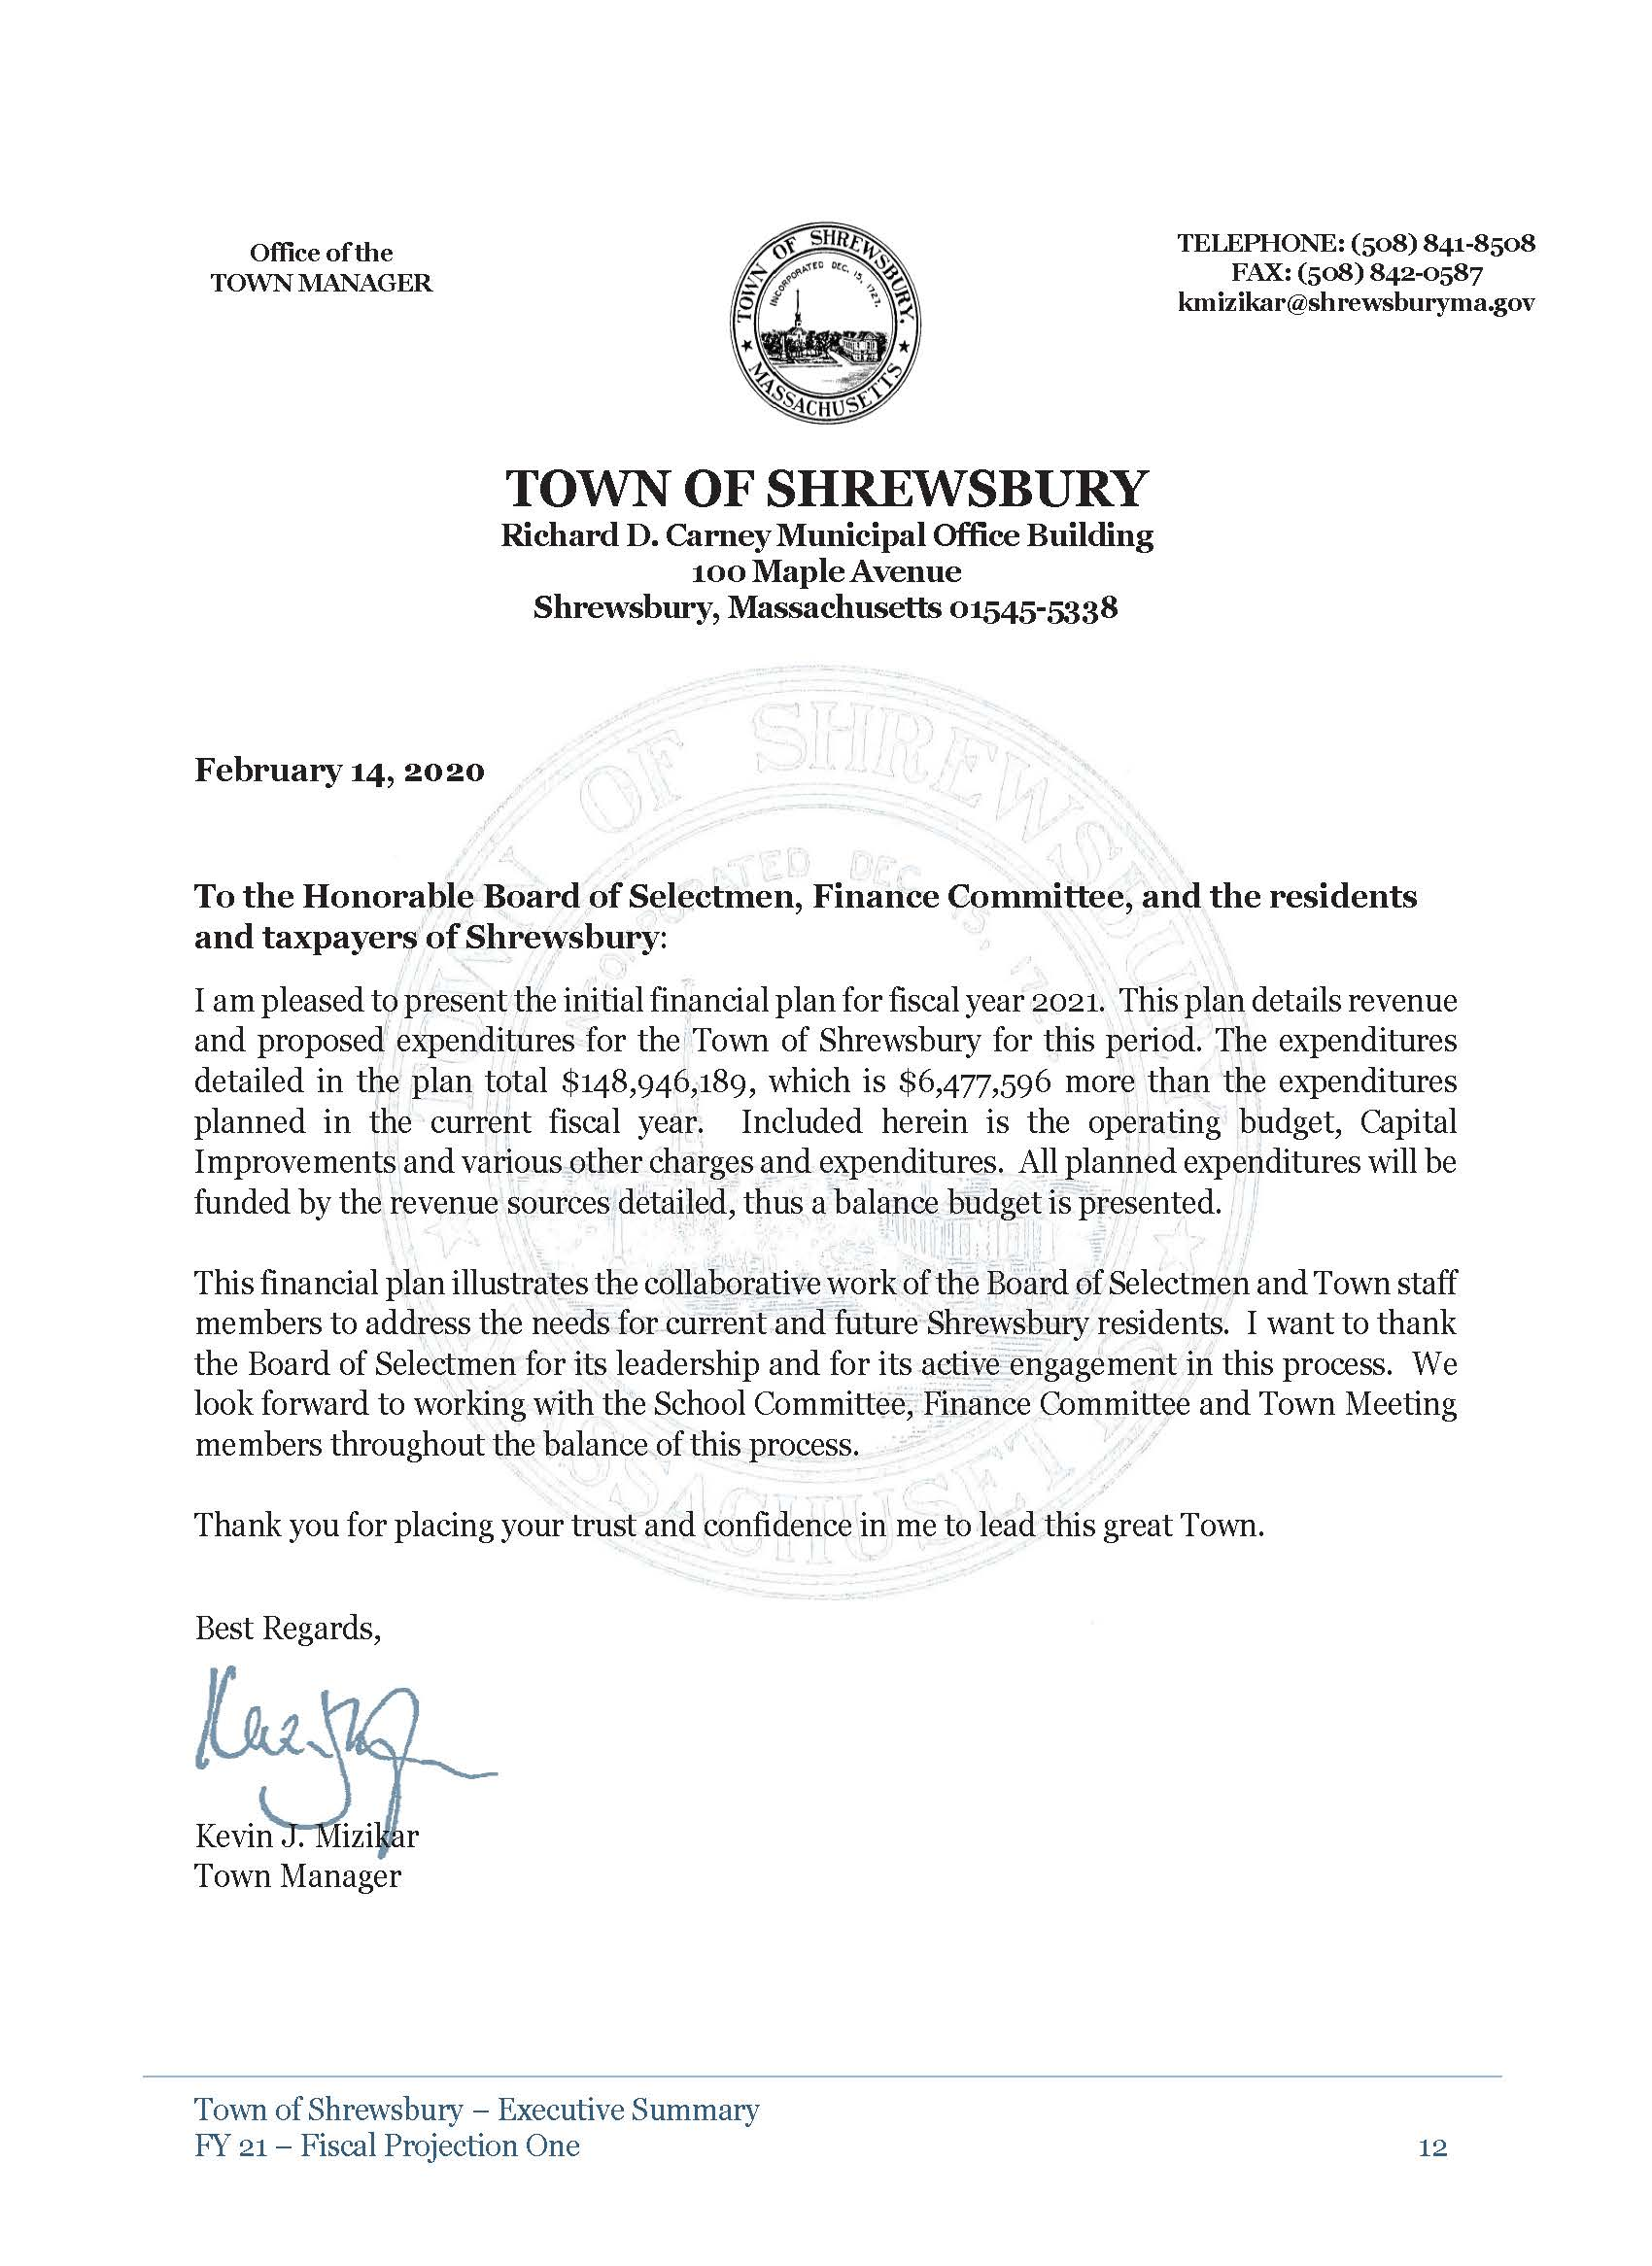 FY 21 Financial Plan - Fiscal Projection 1 - Letter from Town Manager